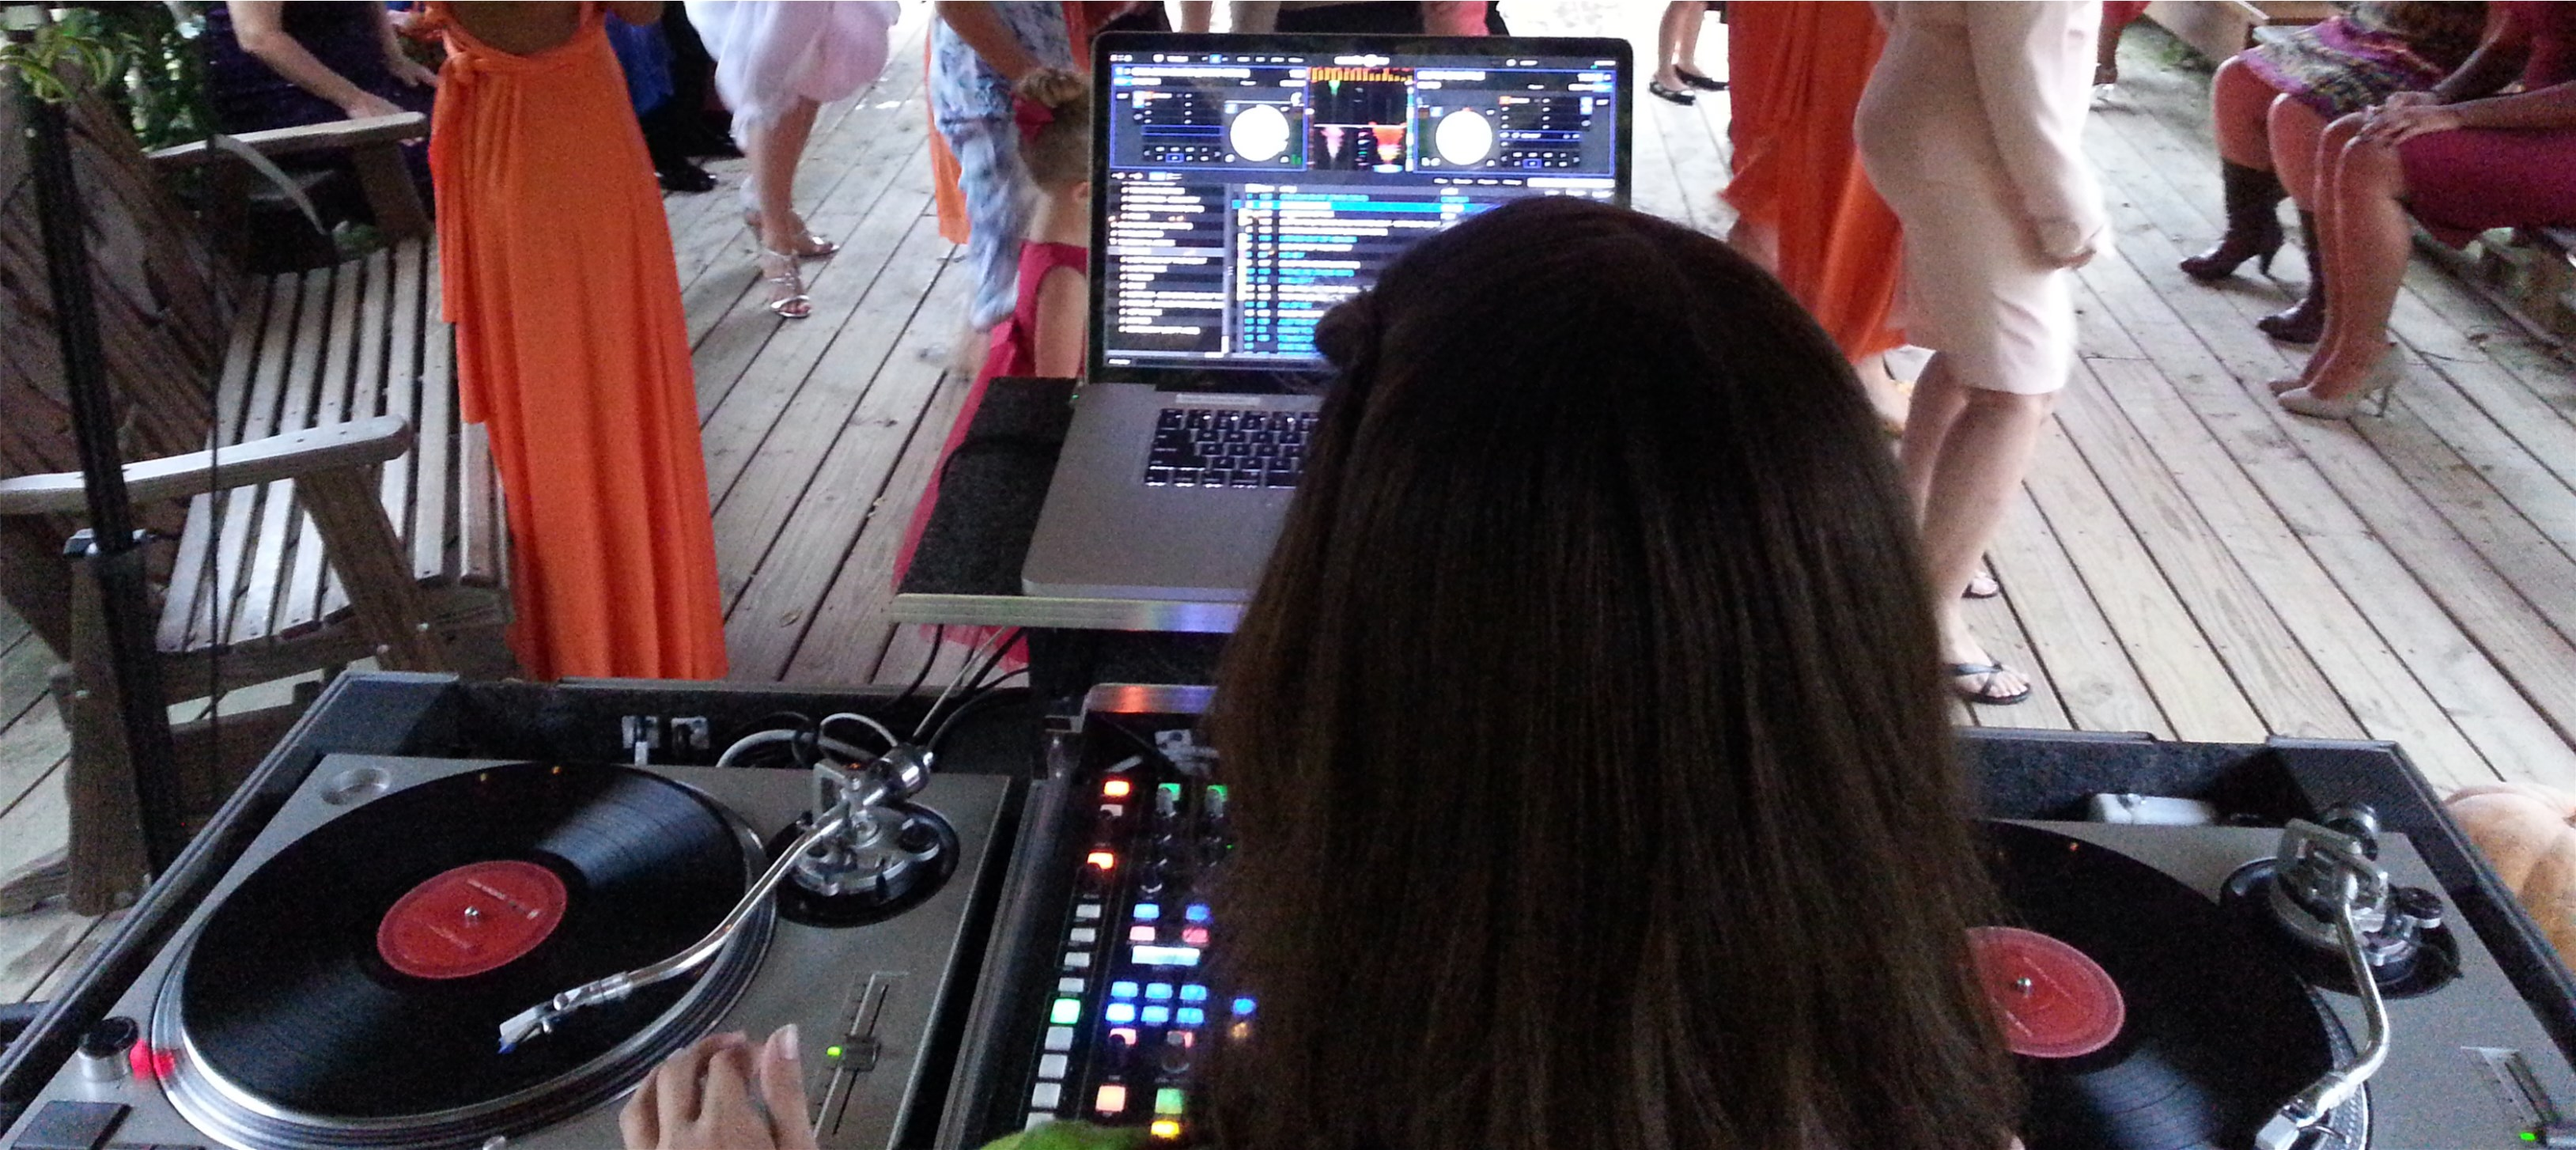 Knoxville Wedding DJ FAQ – Do You Play Both Old and New Music